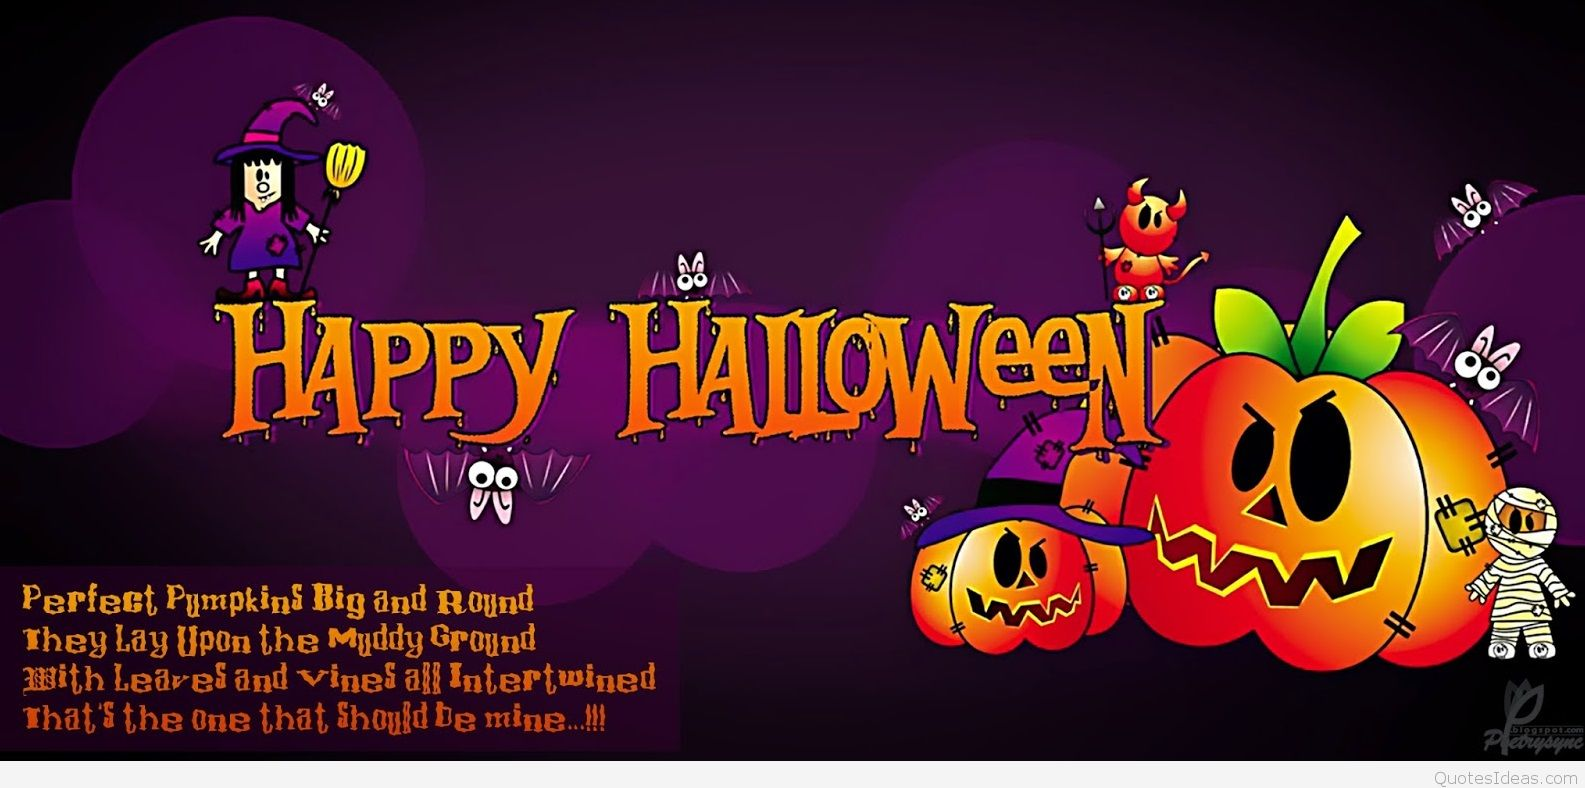 happy halloween wishes - trends in usa